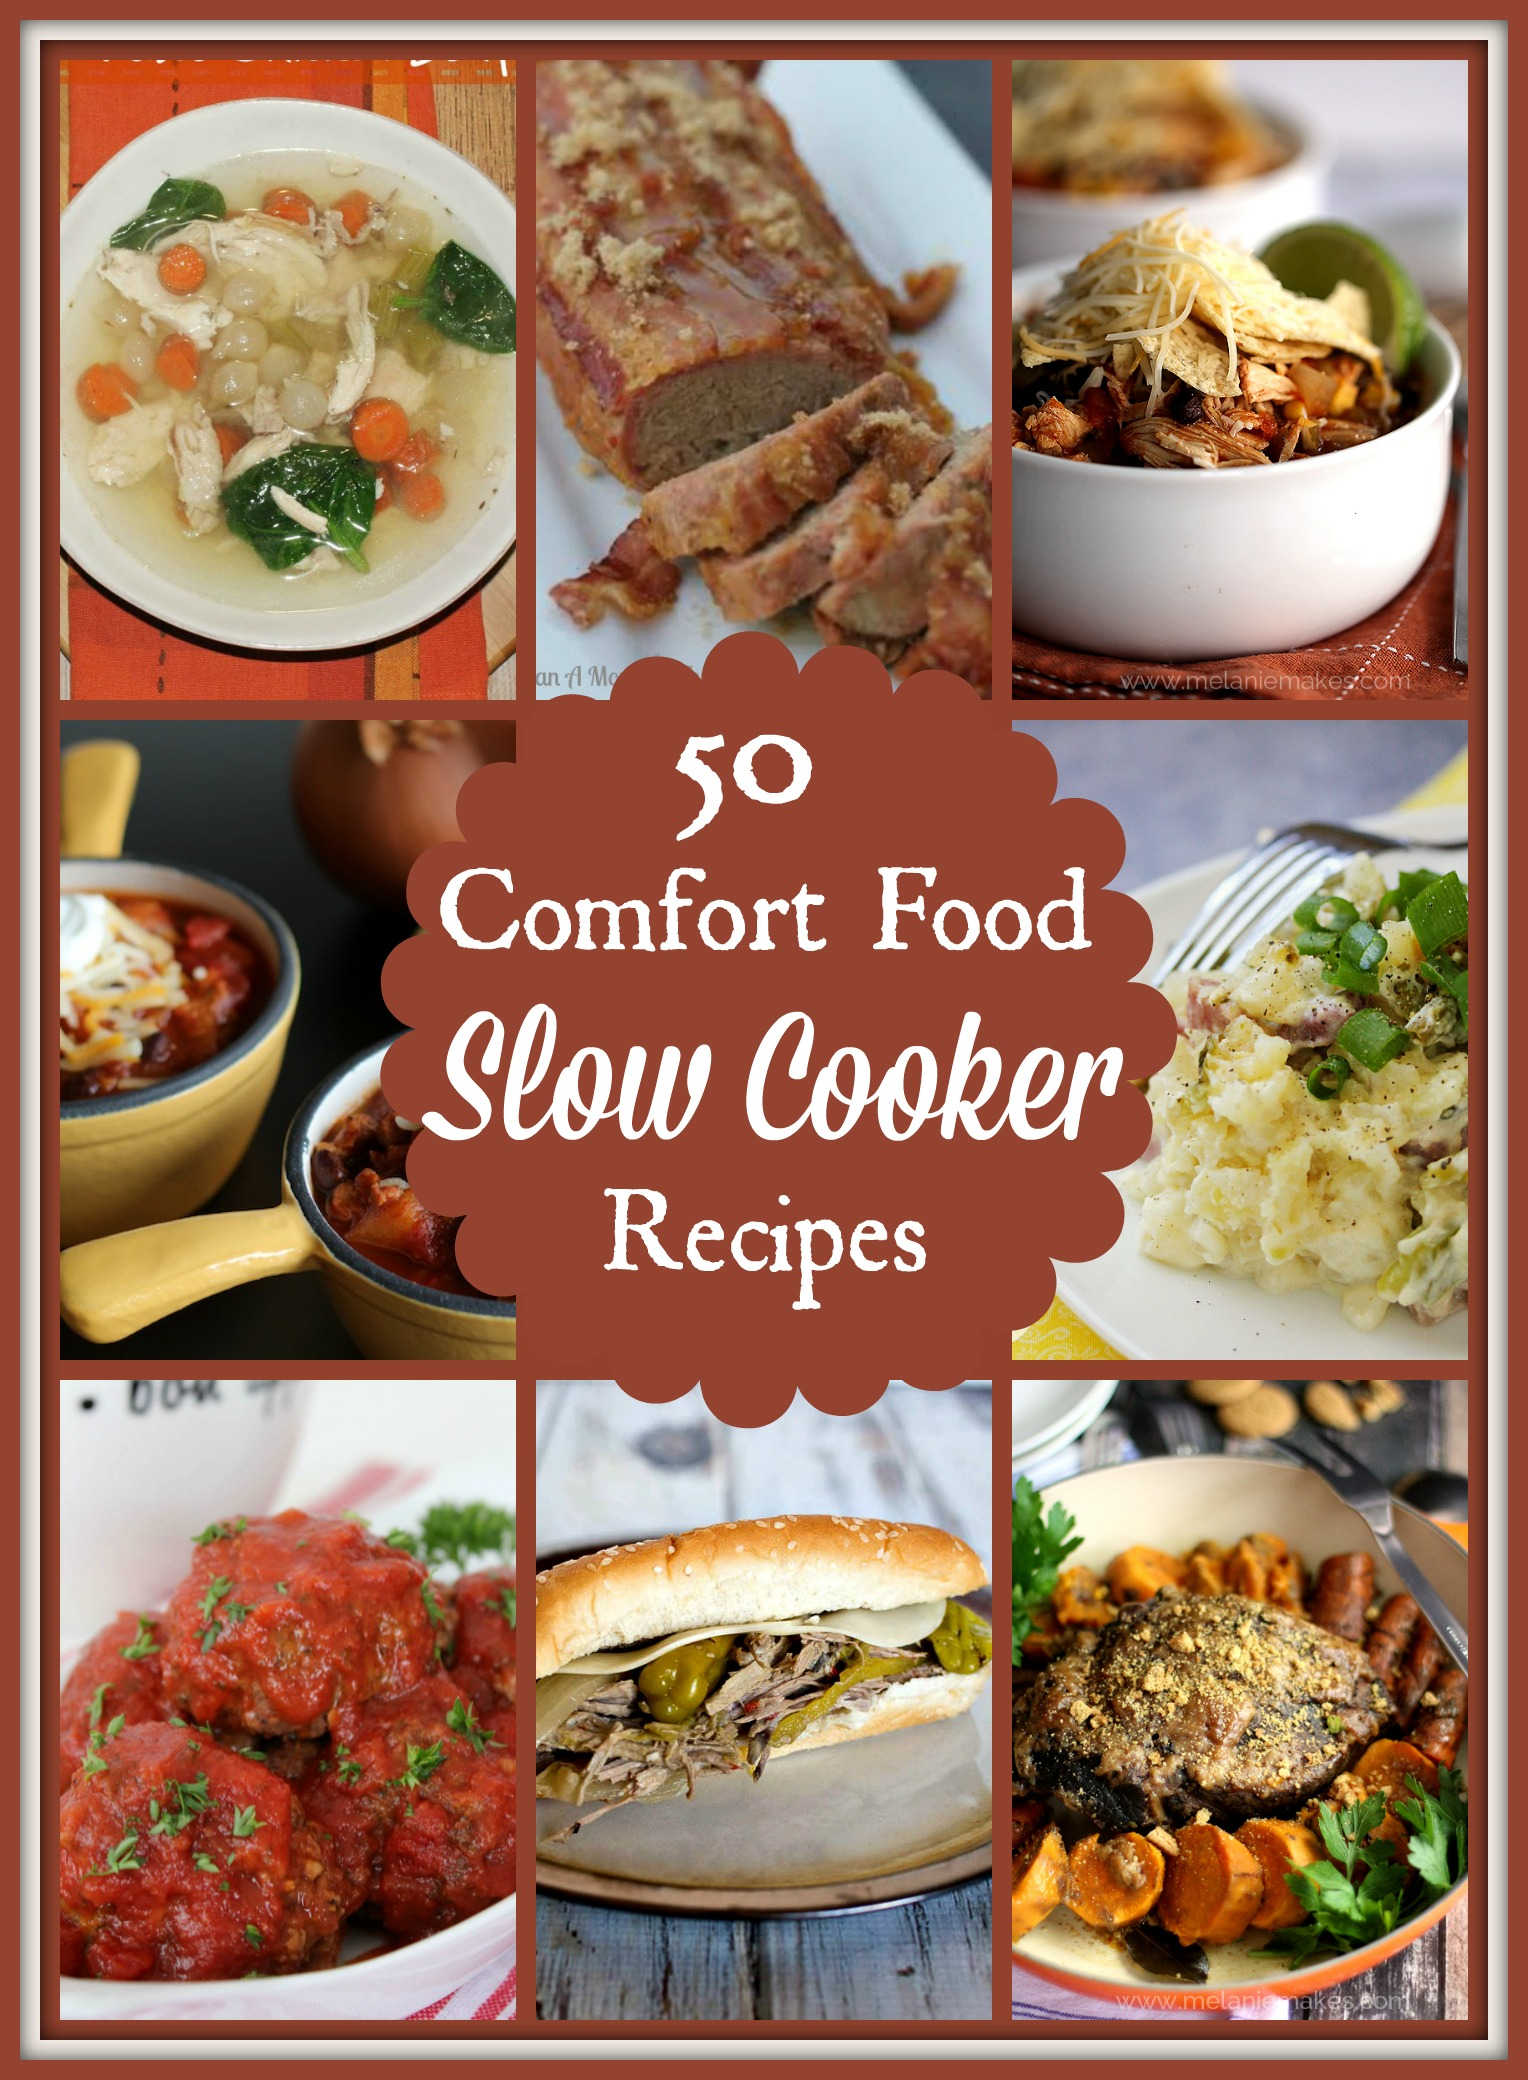 50 Comfort Food Slow Cooker Recipes - Easy comfort food you can make ahead in your crockpot.